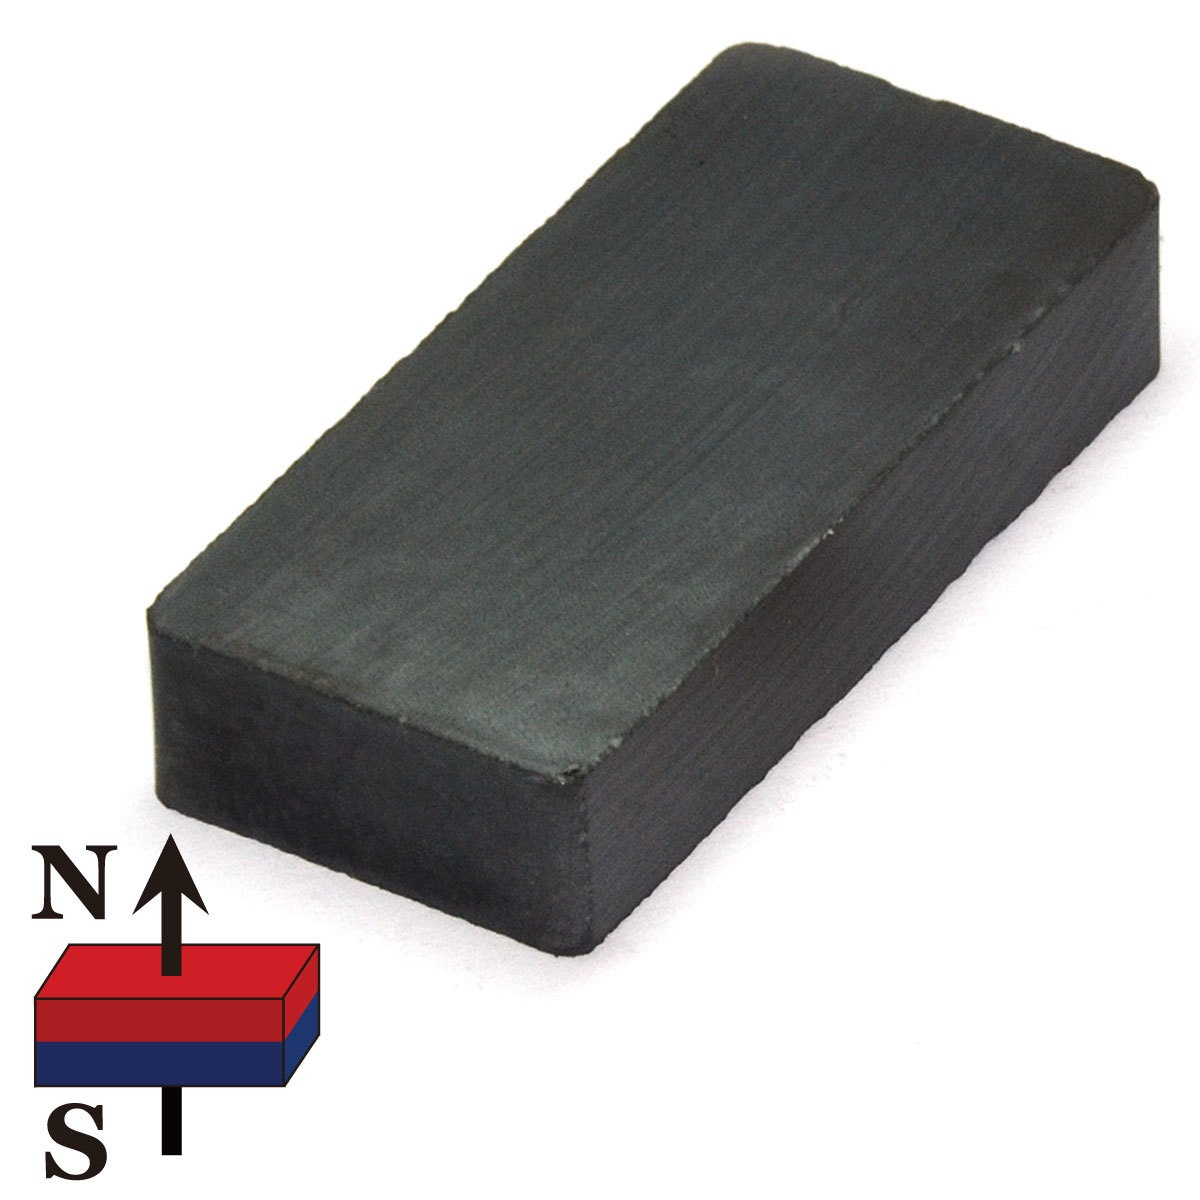 Strong Ferrite Block Rectangular Magnet, Ferrite Rectangular Magnets, Ferrite magnets